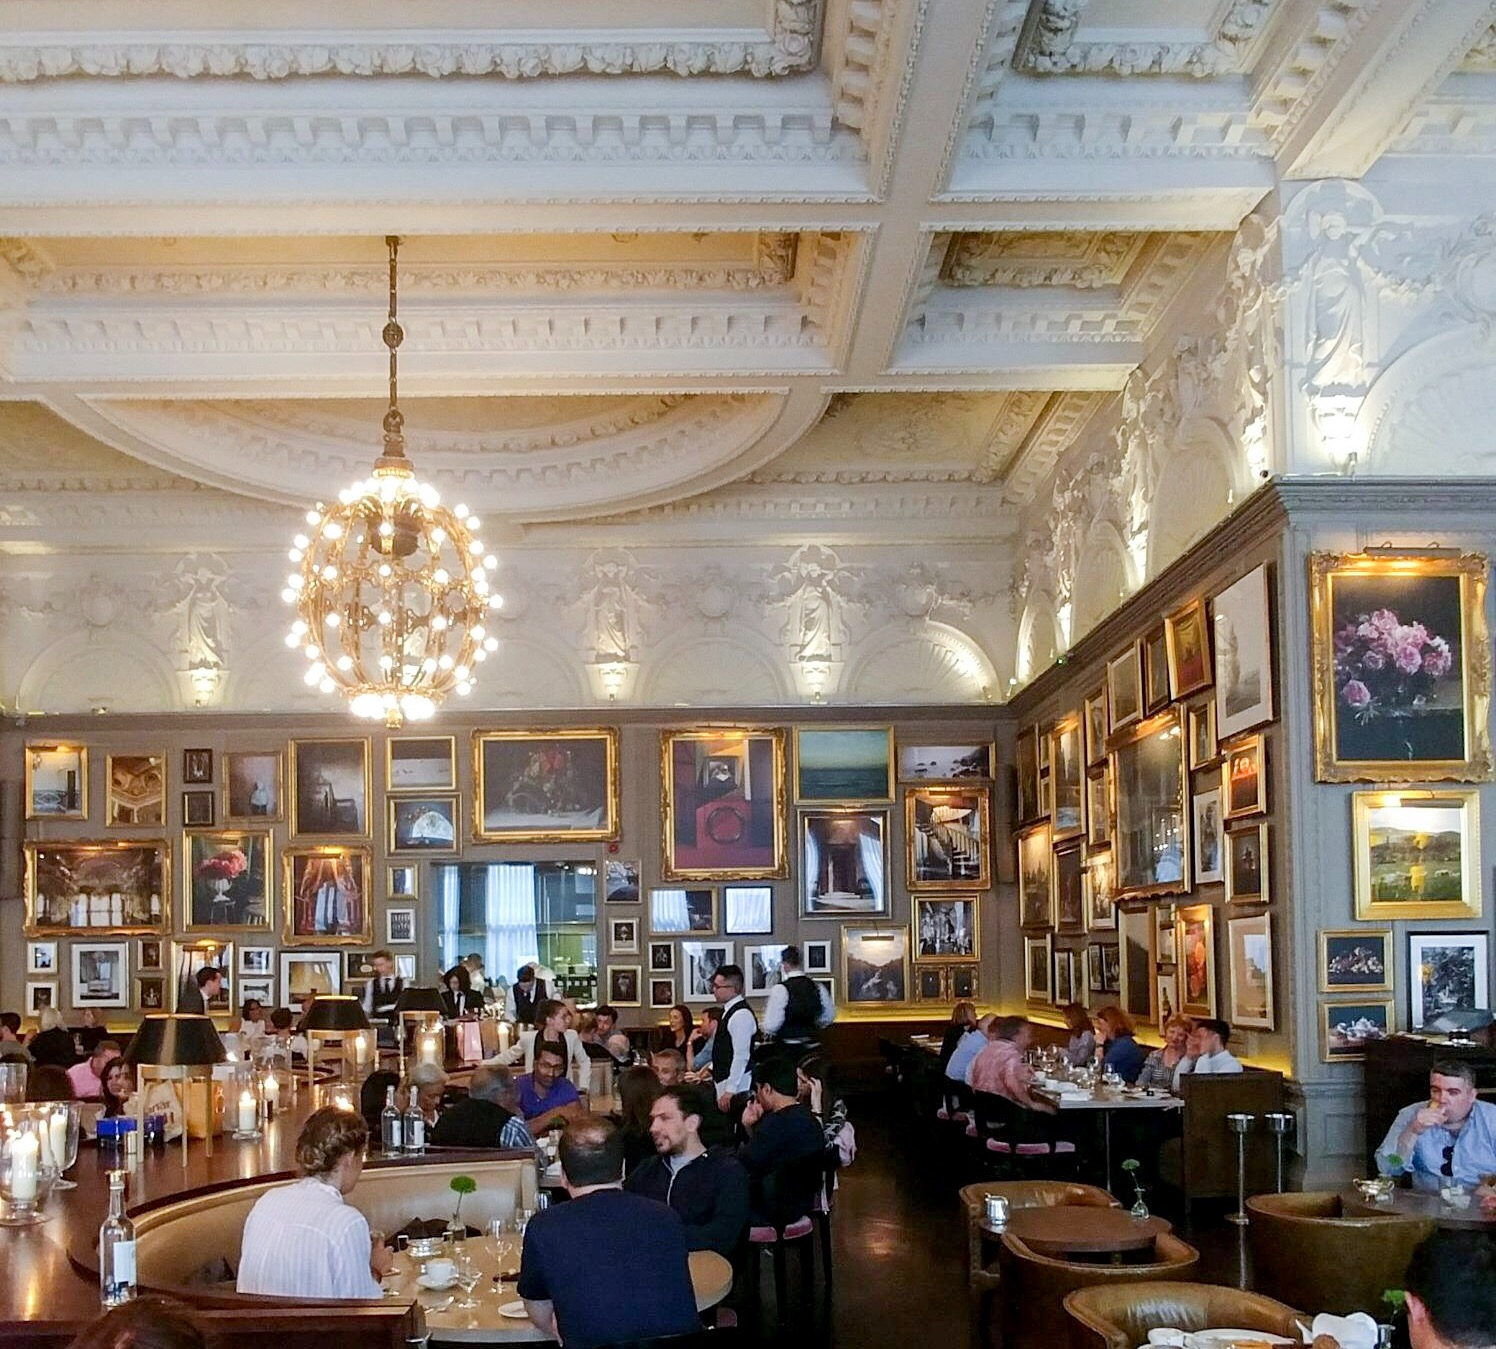 Berners Tavern - Situated in the London Edition, this is a place where you would want to sit for hours sipping cocktails or enjoying a glass of Prosecco. It feels like you are inside a movie scene.